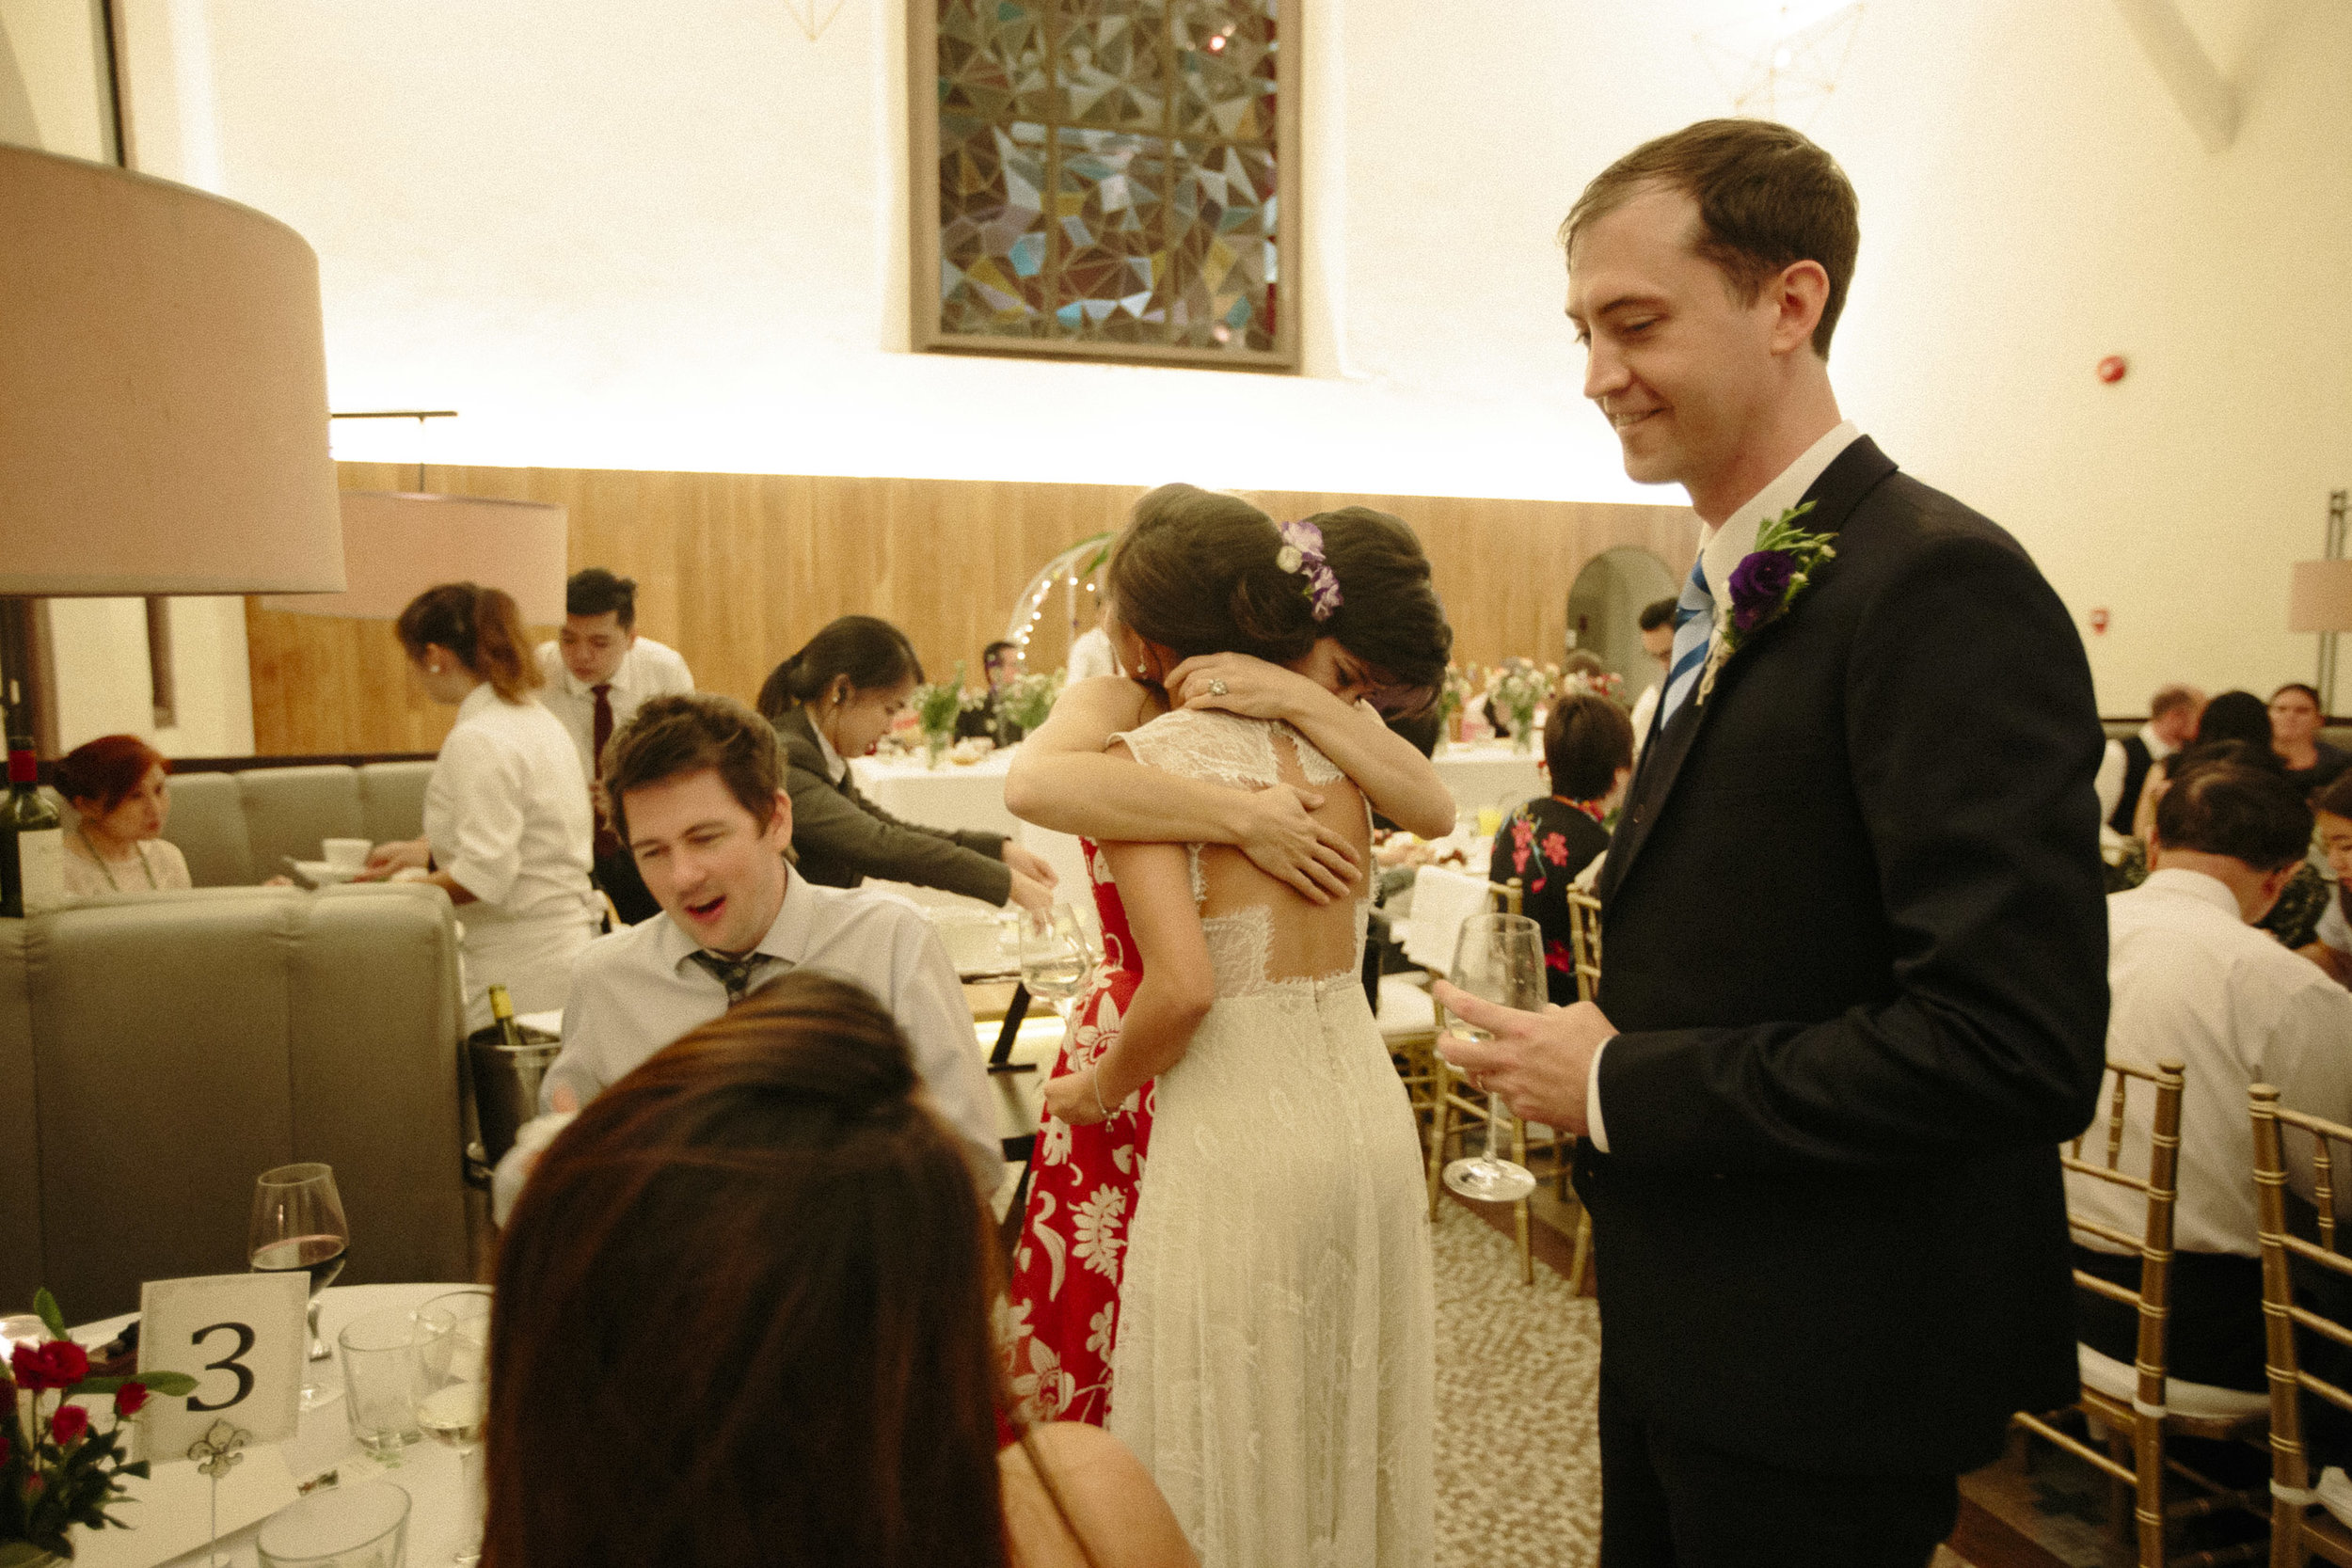 singapore-wedding-photographer-hiram-joyce-074.jpg